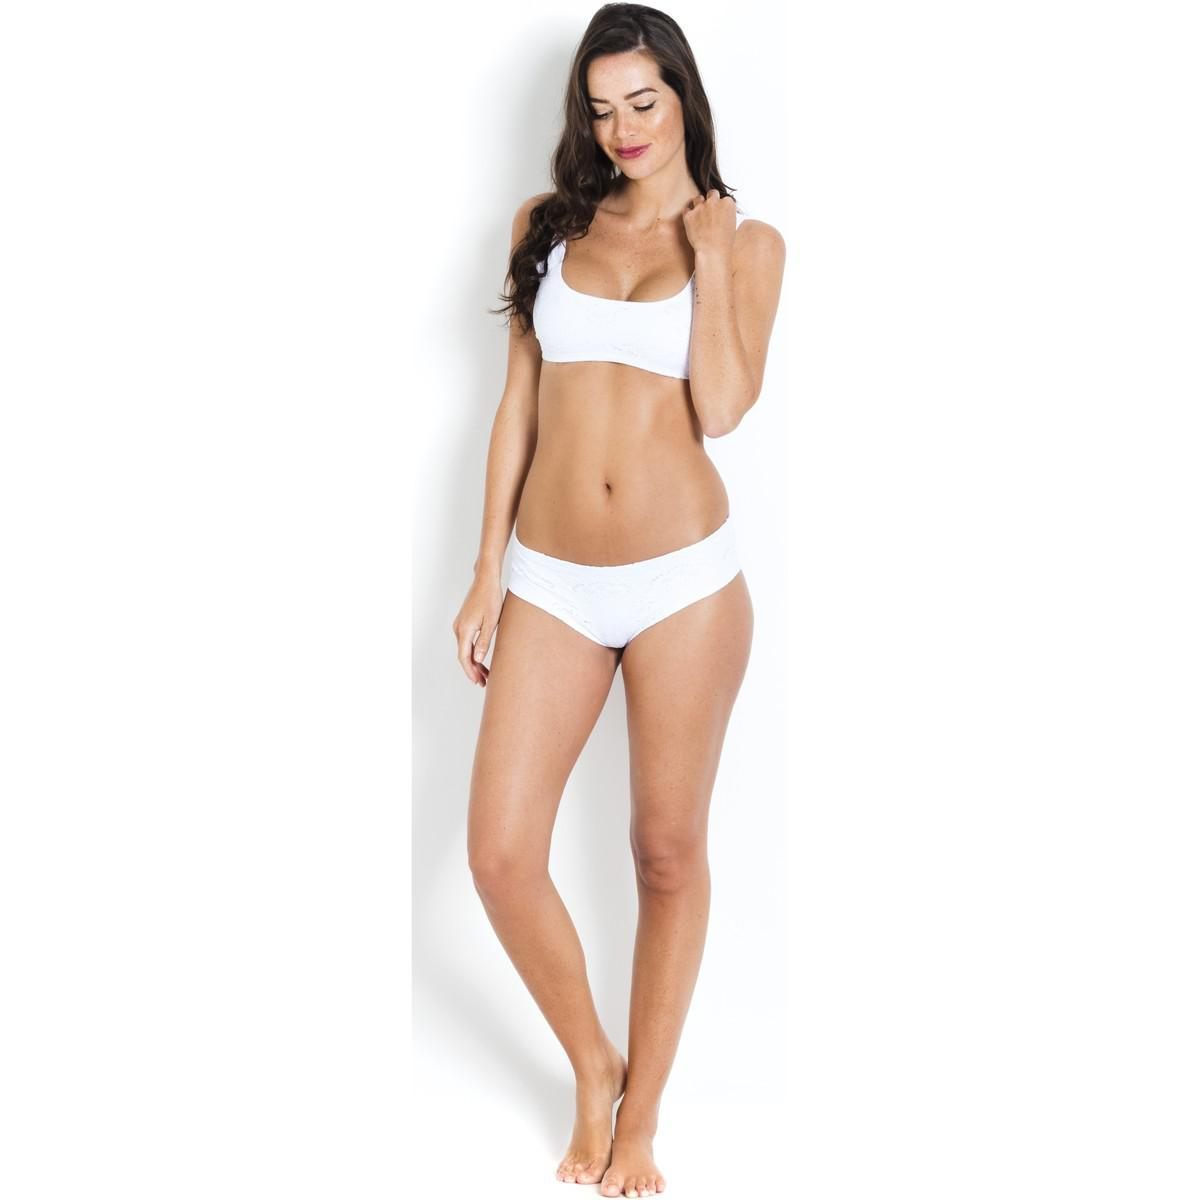 Bikini Top Embroidered Apoline PAIN DE SUCRE White - Jersey Broderie anglaise Pain De Sucre Buy Cheap Outlet Locations Fake Cheap Online Sale Many Kinds Of Visa Payment 8WfnBz